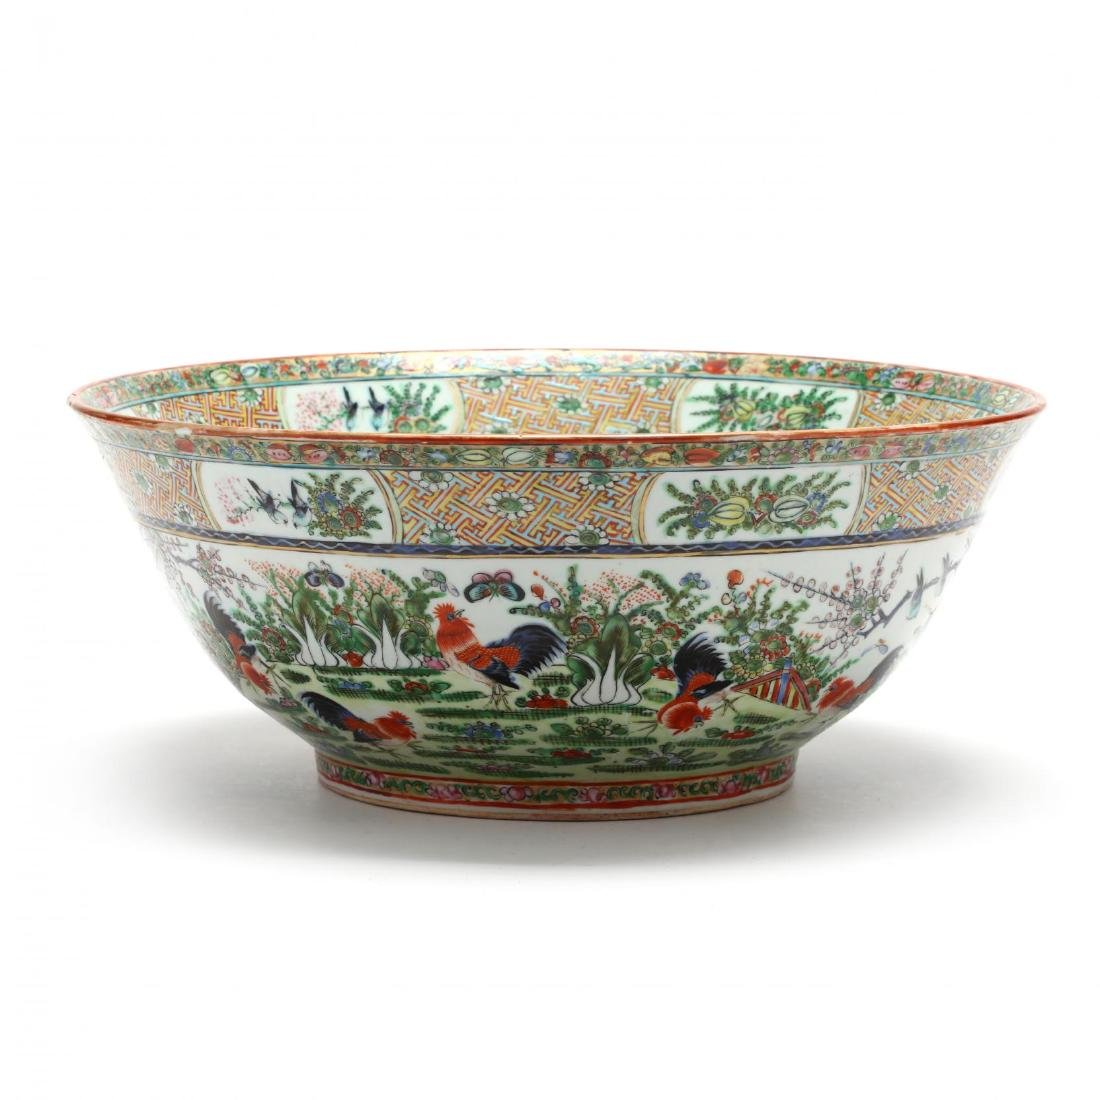 A Rare Large Chinese Export Porcelain Punch Bowl with